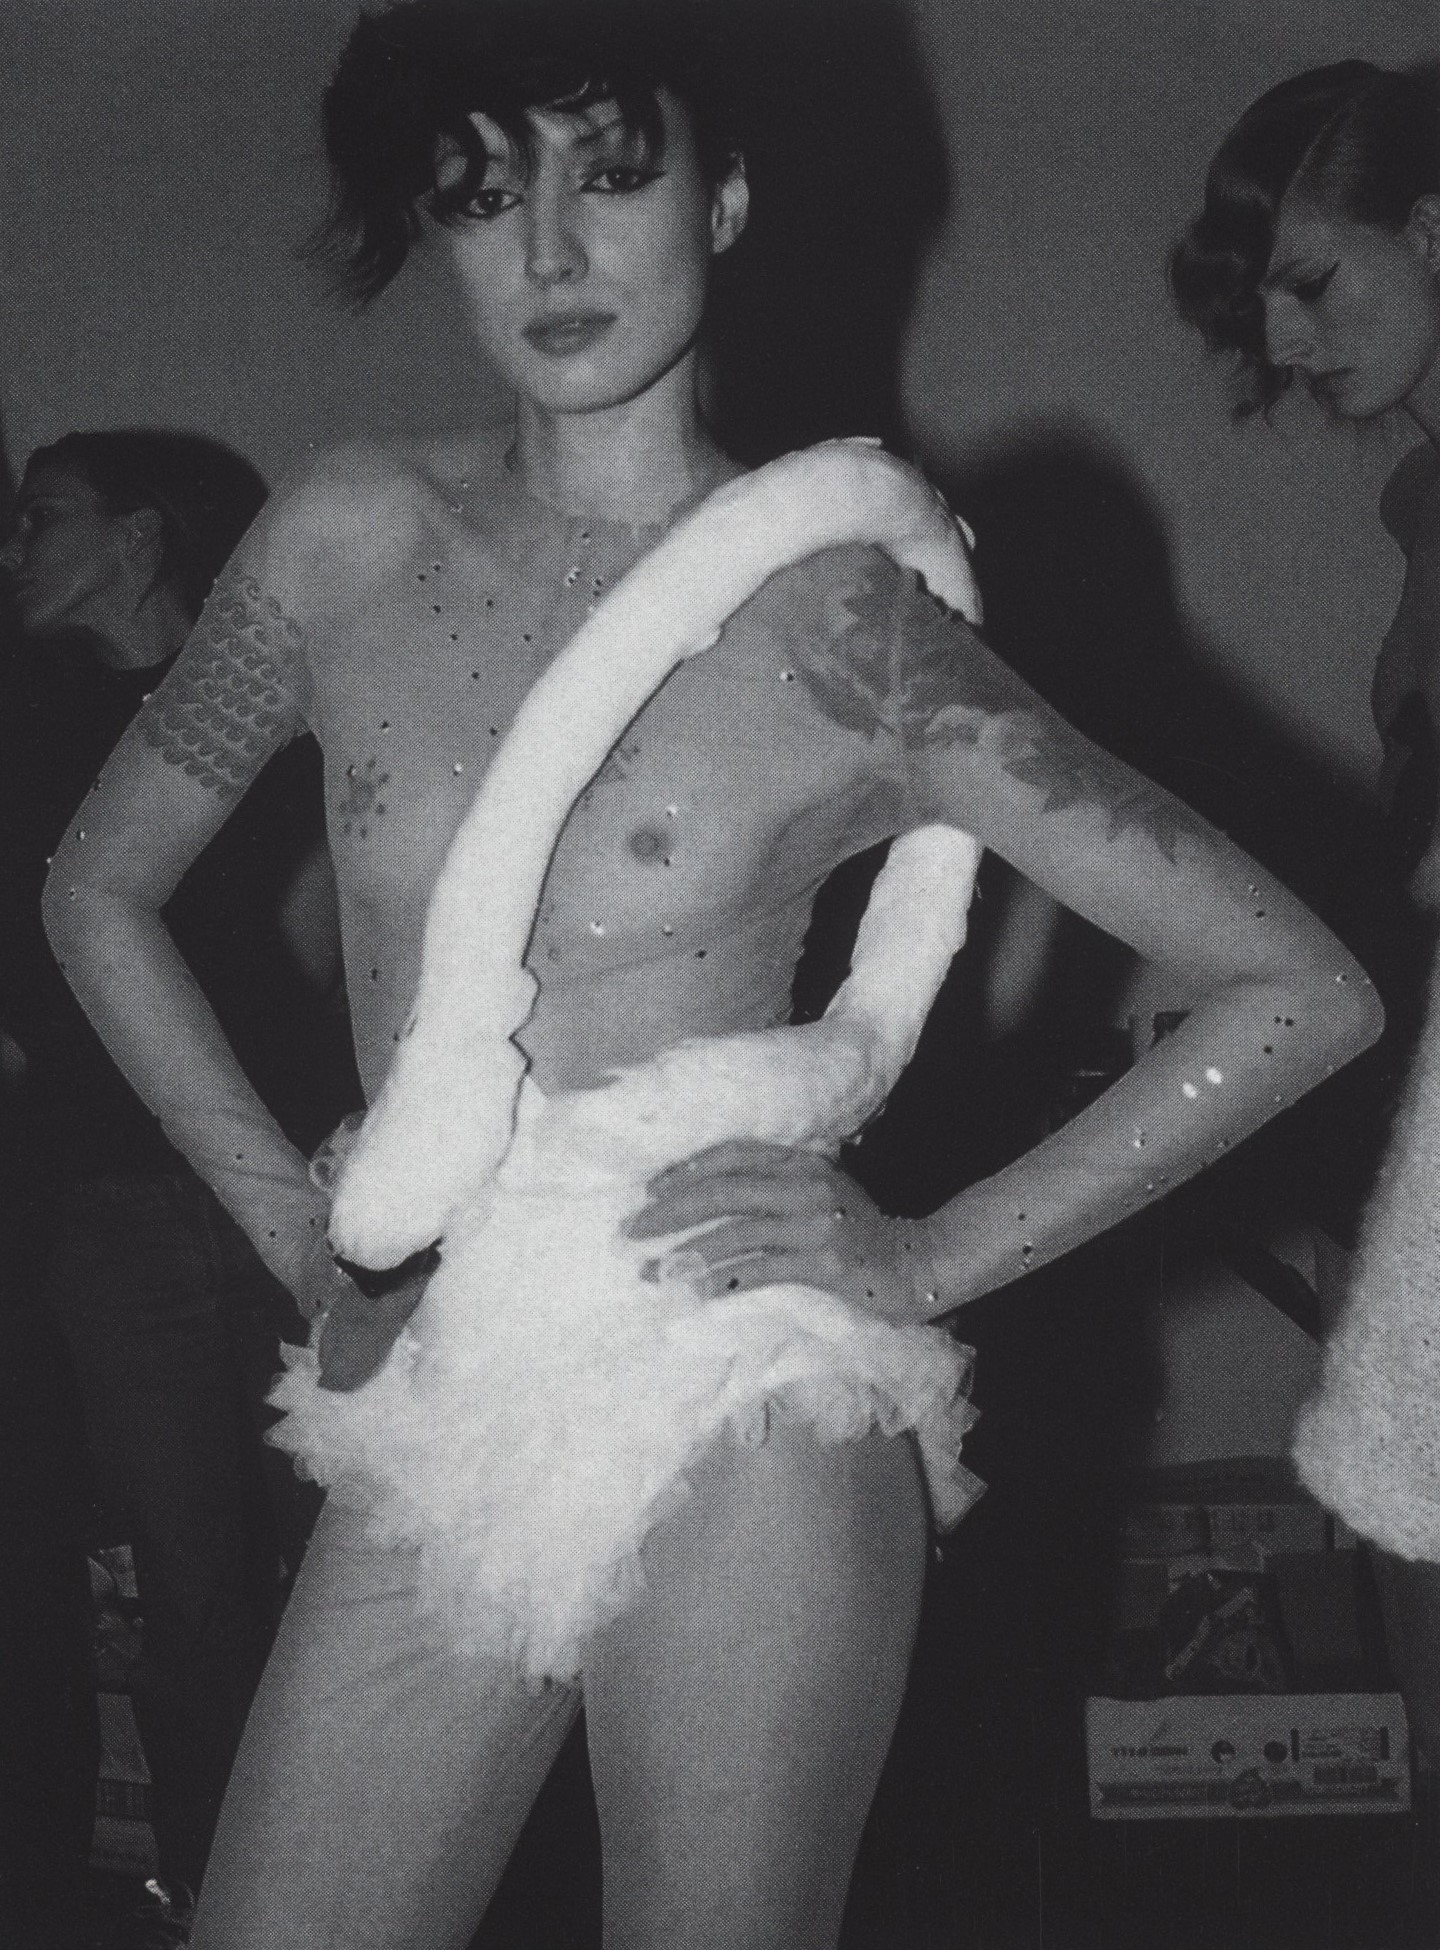 MARIAN PEJOSKI  UGLY DUCKING COLLECTION BACKSTAGE FEBRUARY 2001 PHOTOGRAPHY FUMIKO IMANO SELF SERVICE ISSUE N°15 FALL/WINTER 2001